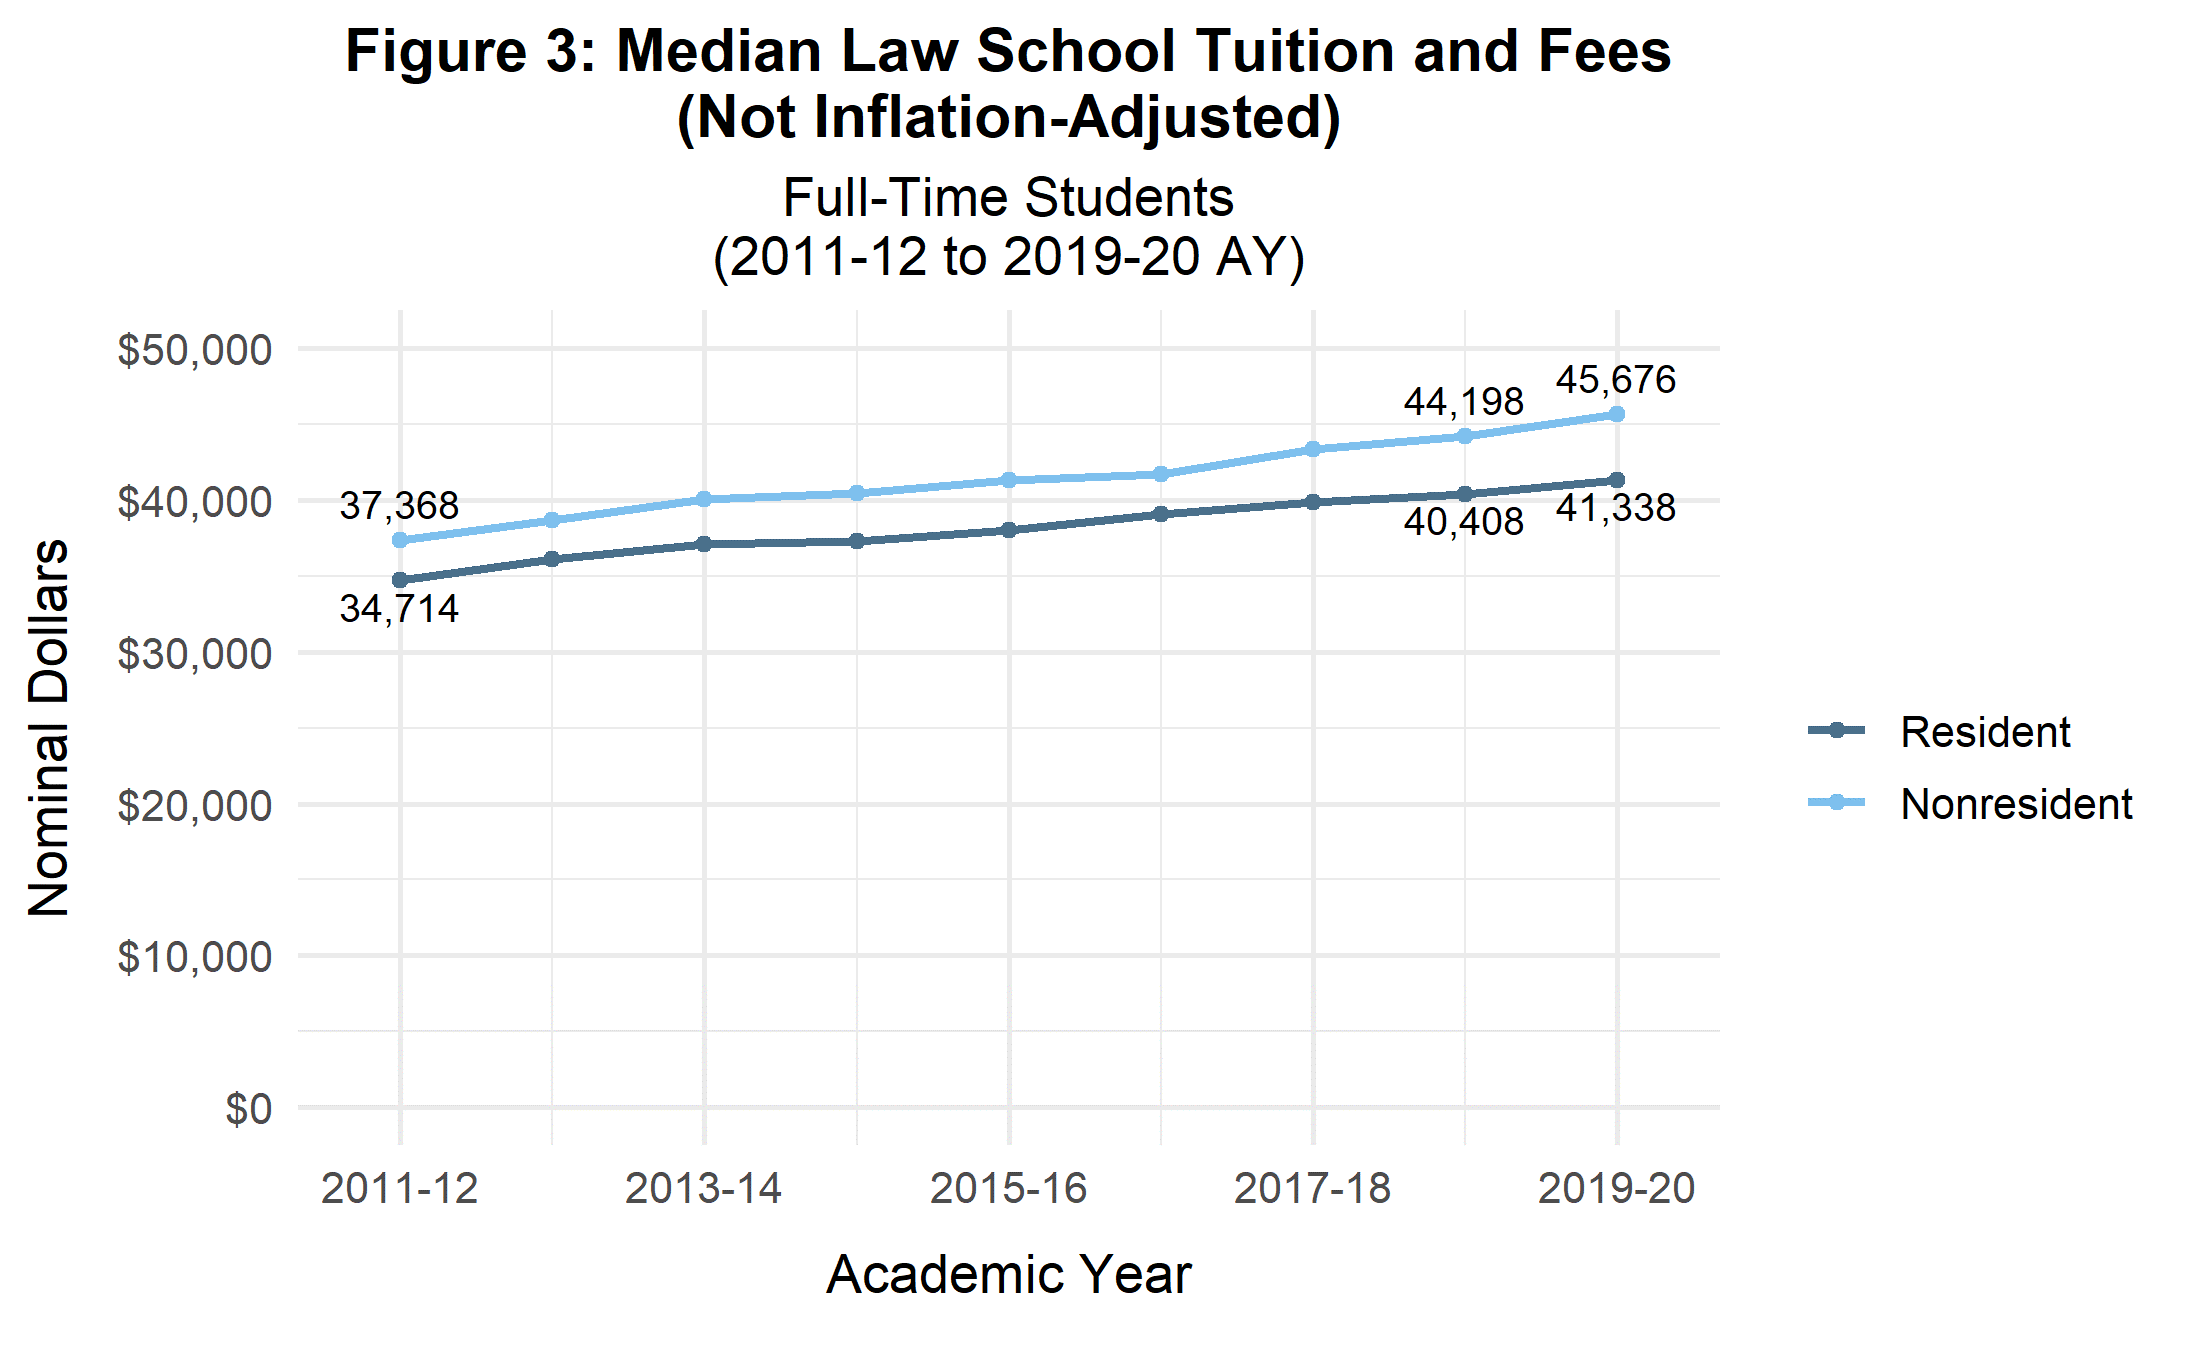 Median Law School Tuition and Fees - Full-Time Students